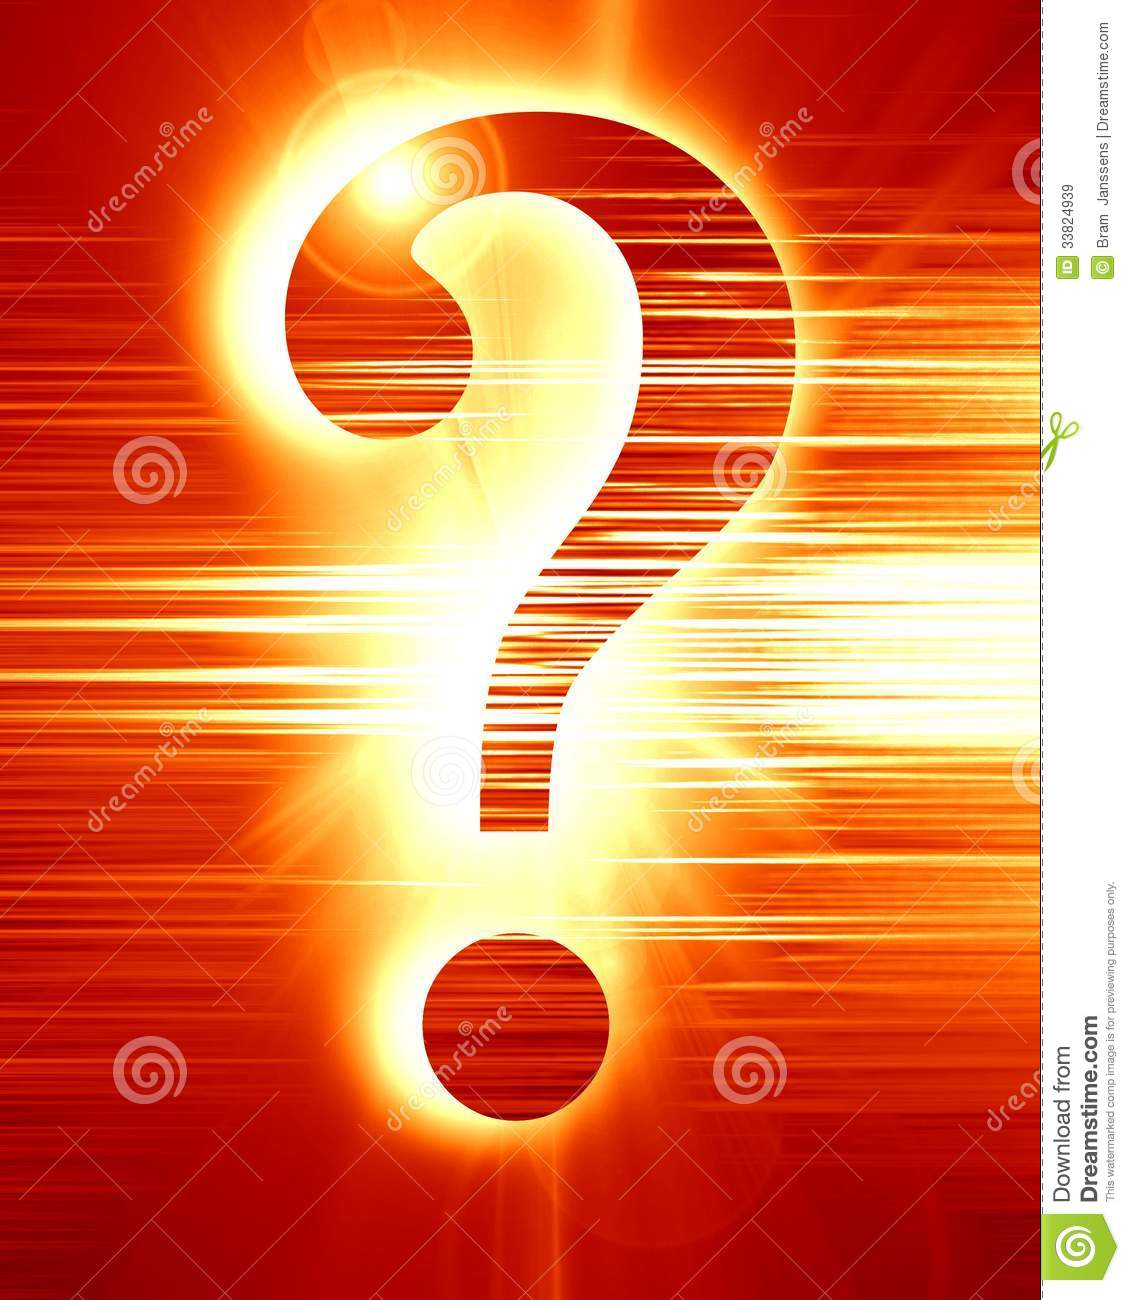 Question Mark Royalty Free Stock Images - Image: 33824939